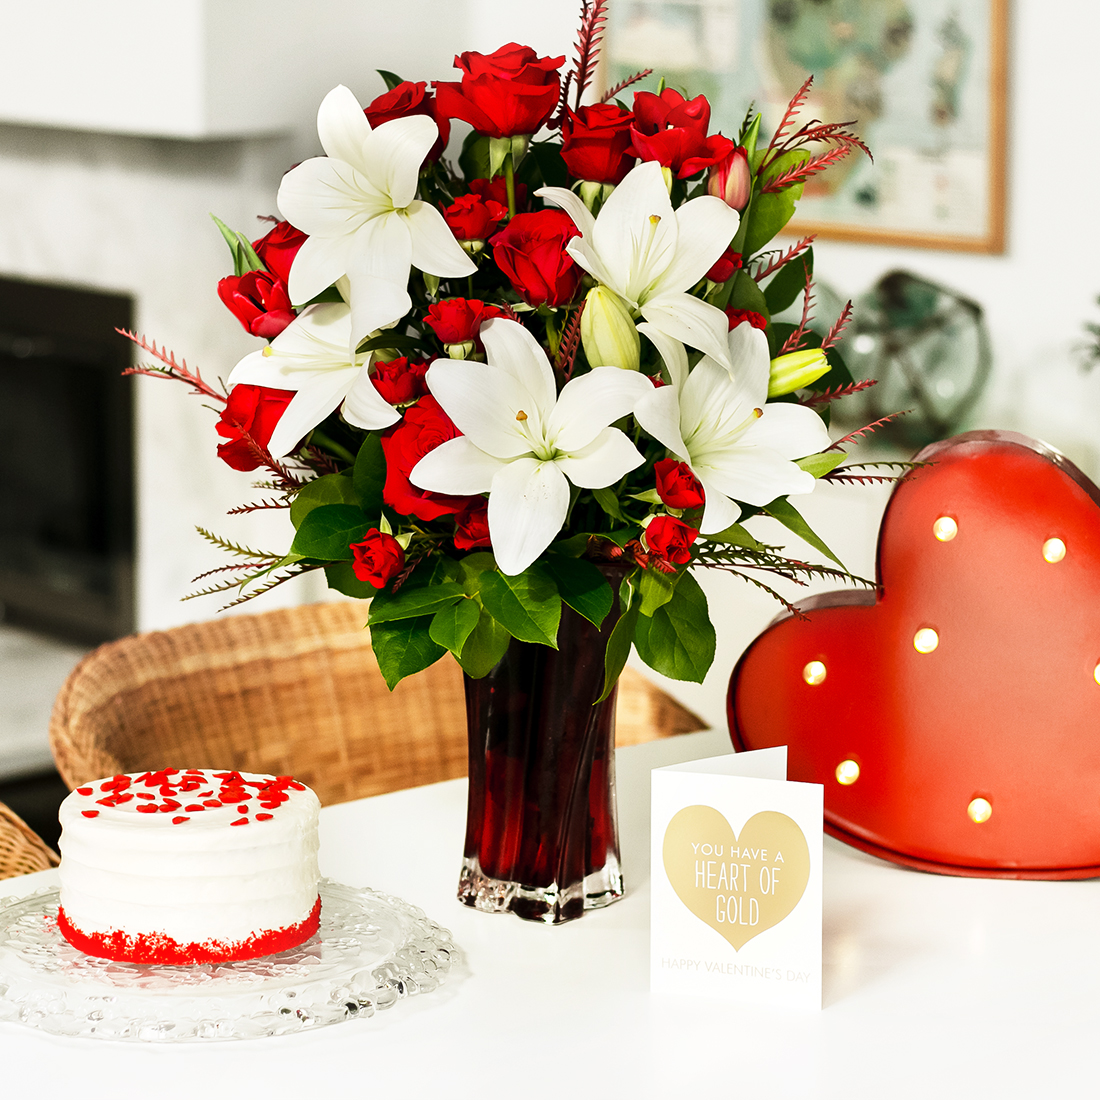 Valentines day gifts for him teleflora blog white lilies and red roses bouquet in red vase izmirmasajfo